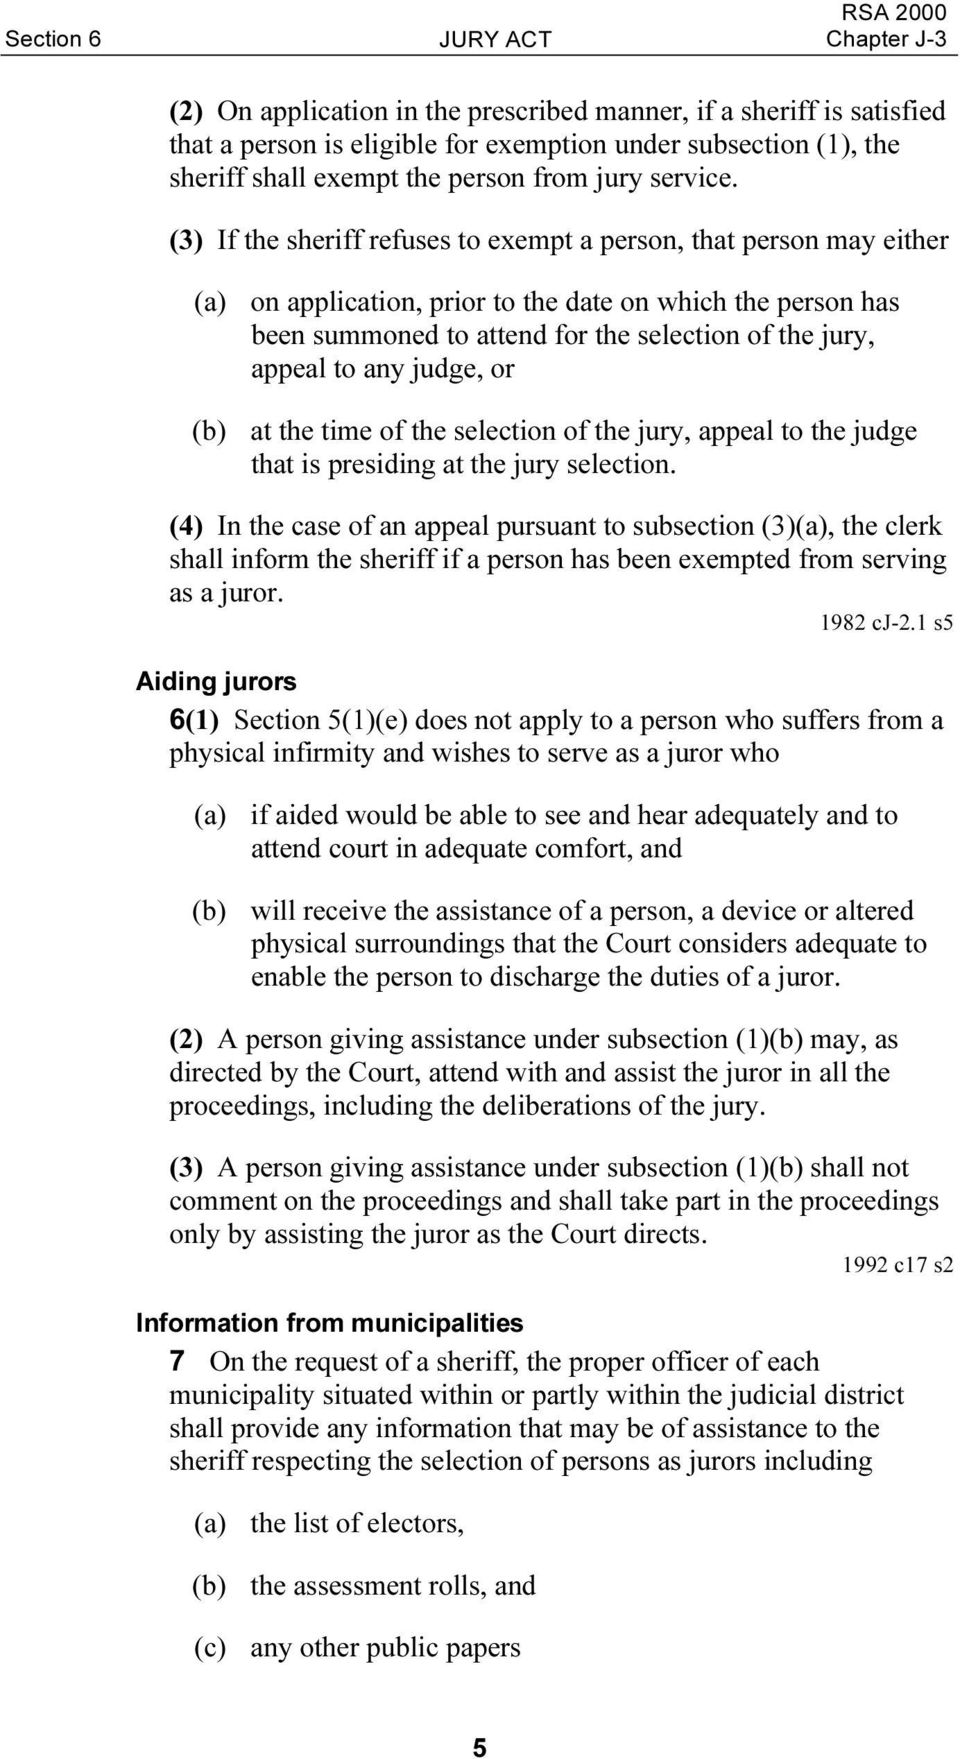 (3) If the sheriff refuses to exempt a person, that person may either (a) on application, prior to the date on which the person has been summoned to attend for the selection of the jury, appeal to